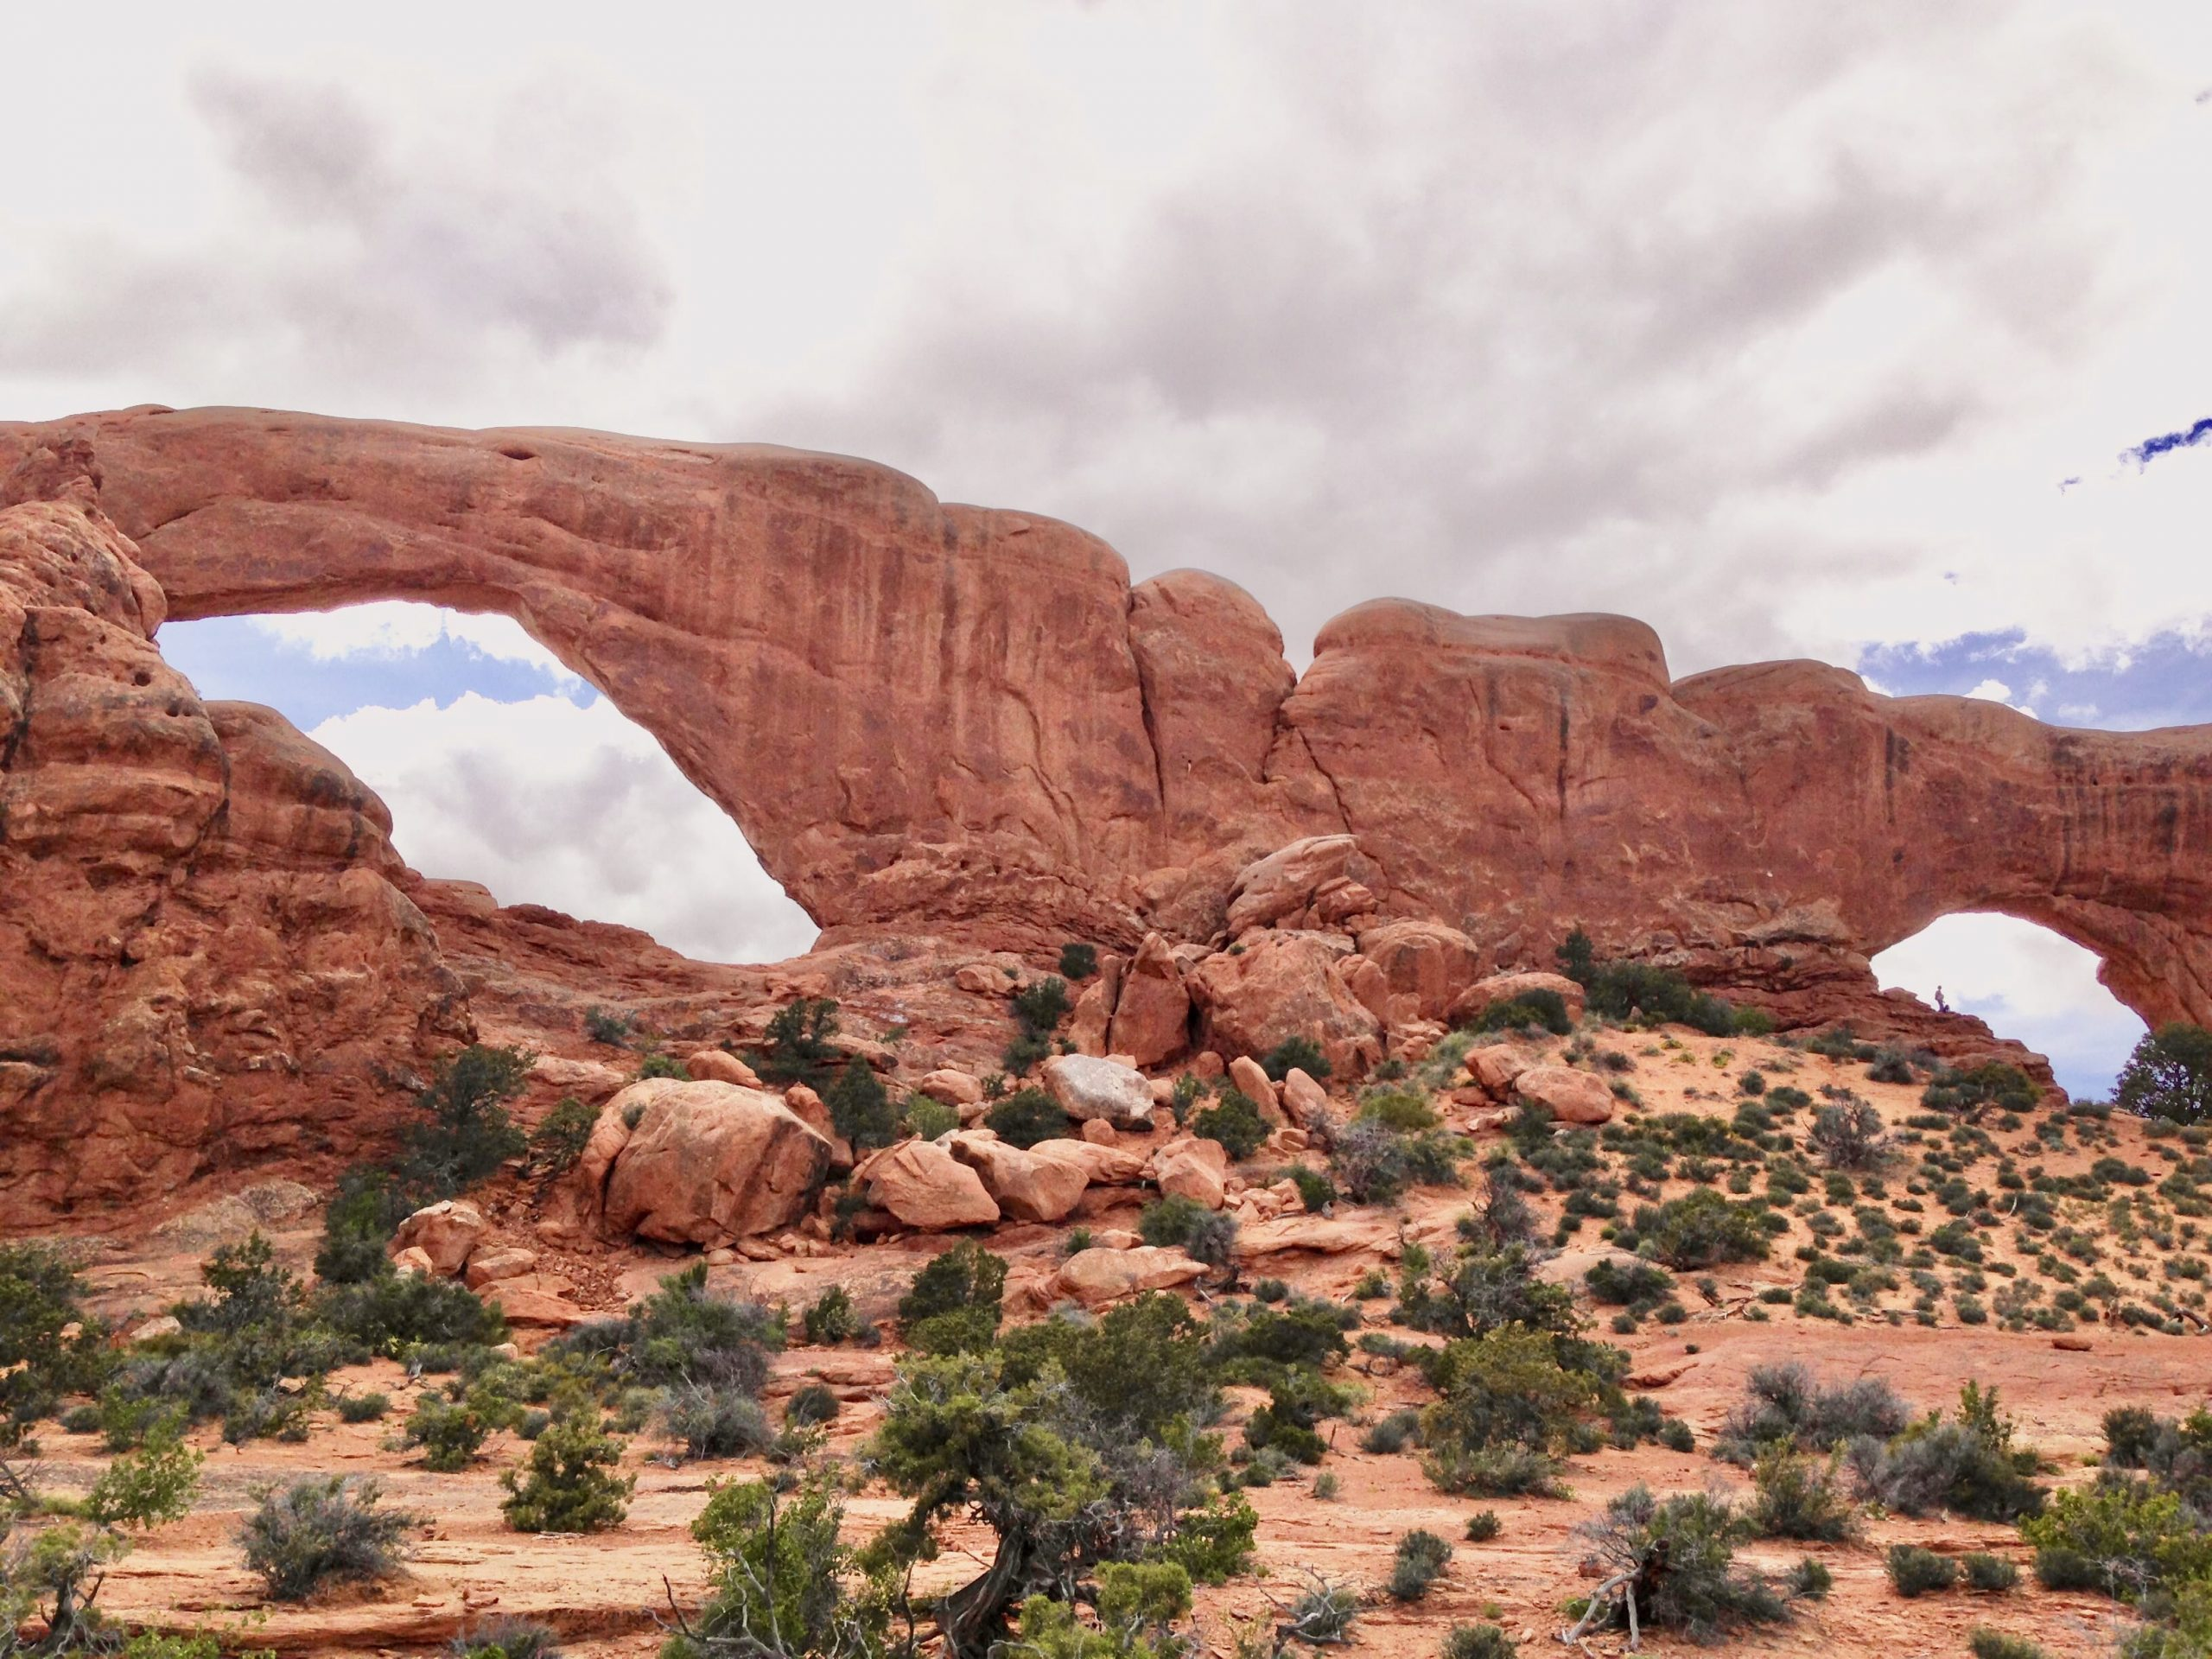 The Windows Arches at Arches National Parks